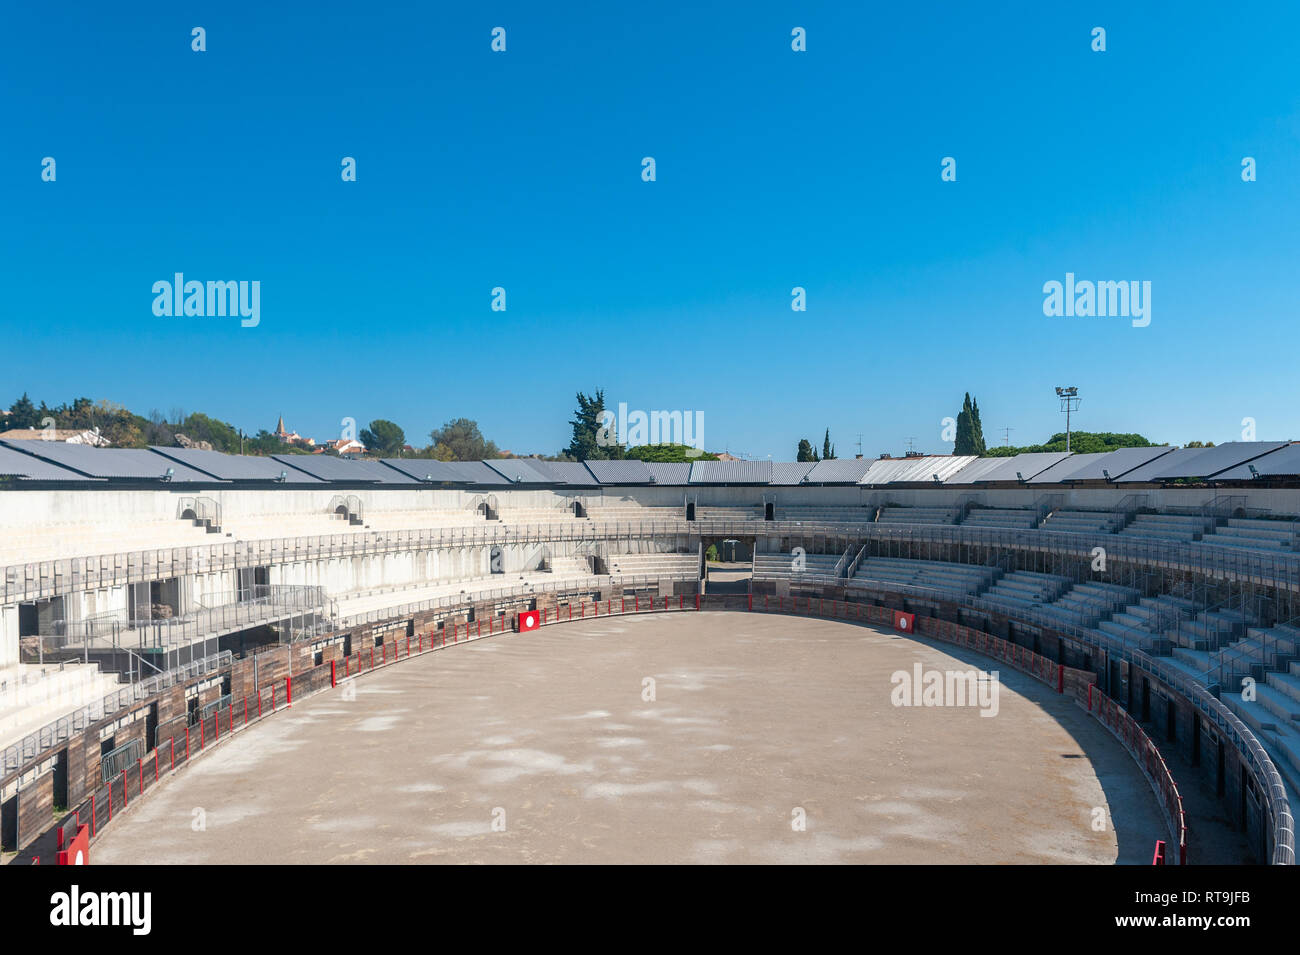 Arena of the historic amphitheatre, Frejus, Var, Provence-Alpes-Cote d`Azur, France, Europe - Stock Image